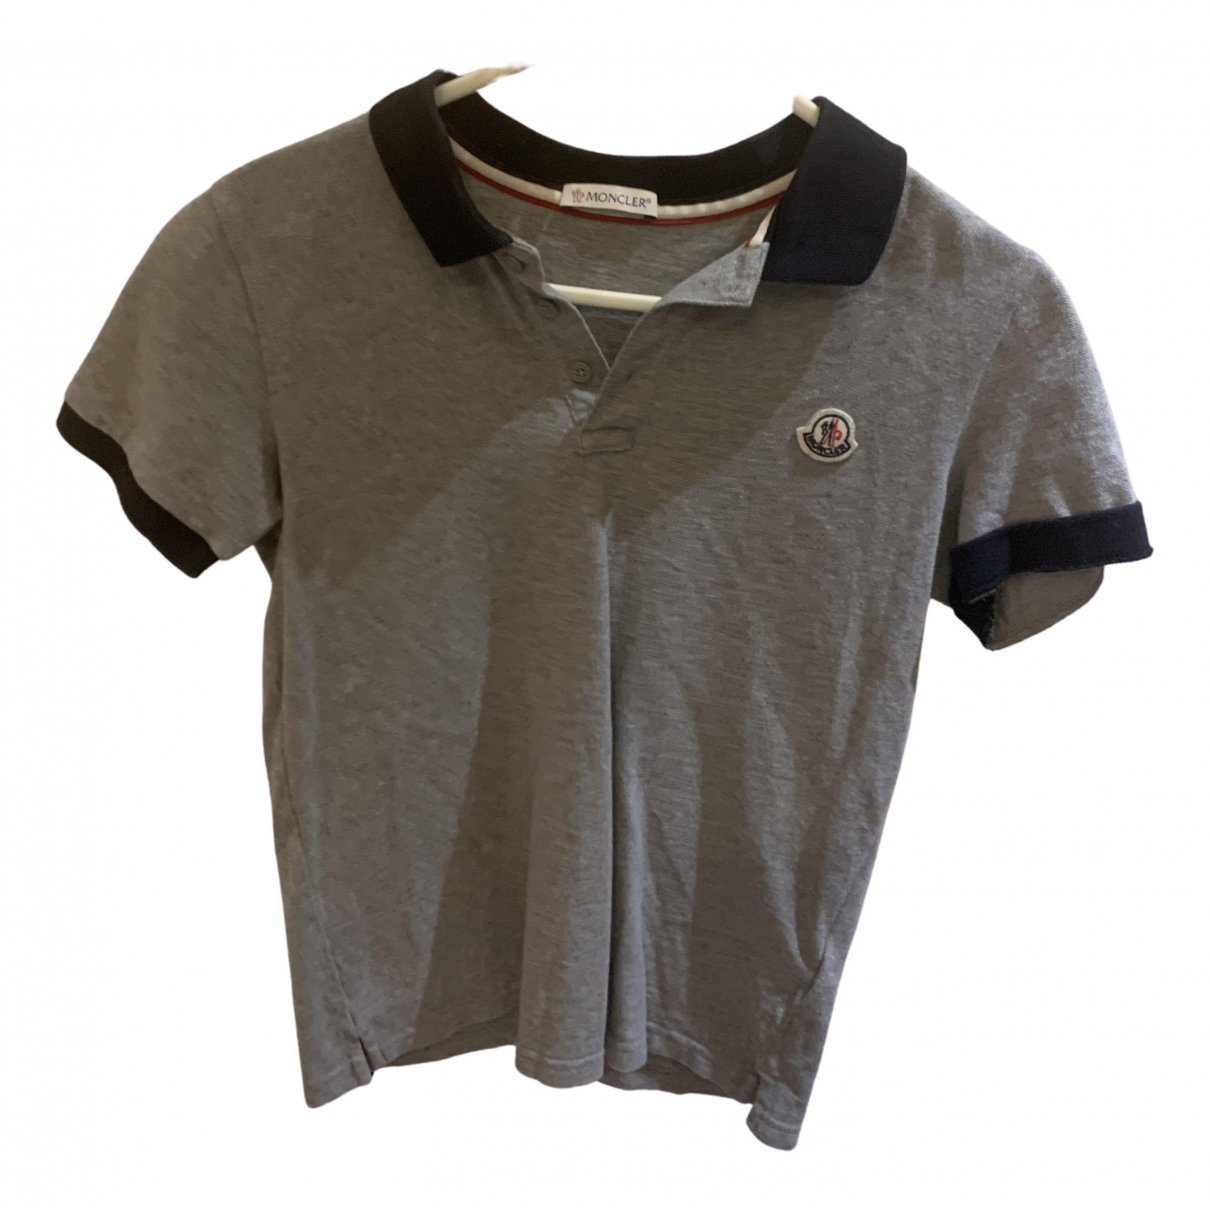 Moncler N Grey Cotton  top for Kids 12 years - XS FR